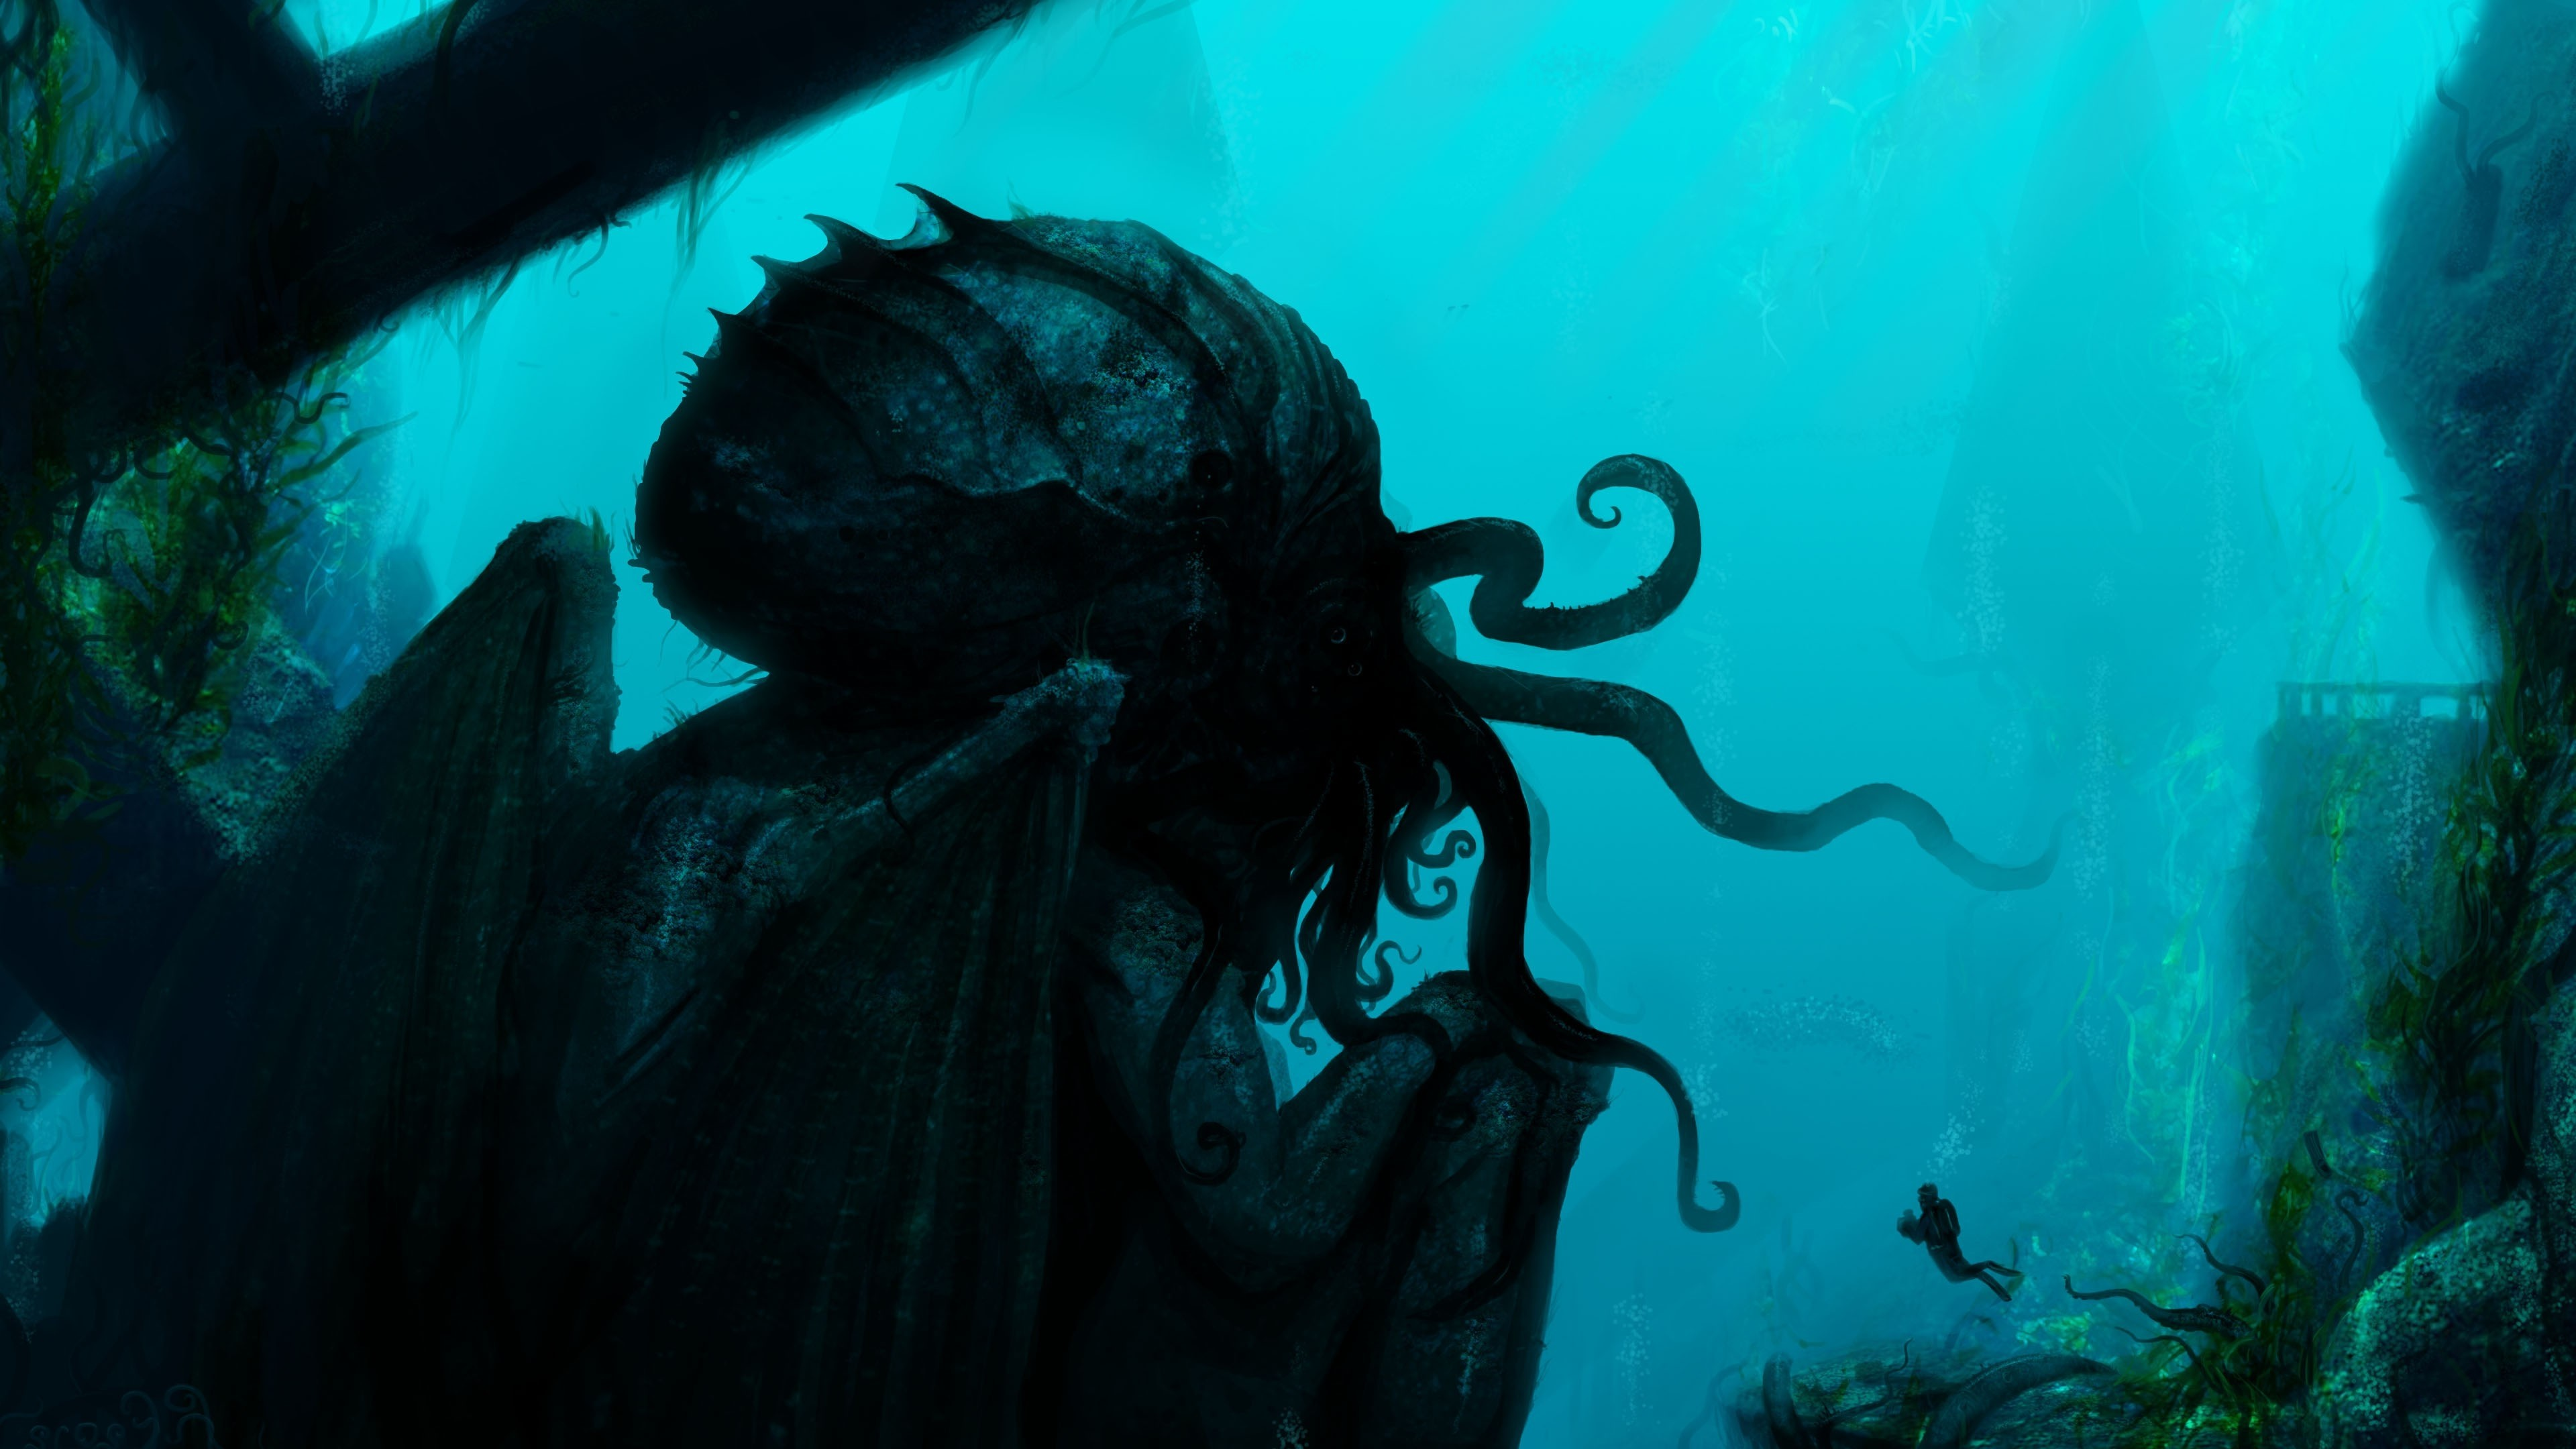 3840x2160 Cthulhu fantasy underwater Wallpapers HD / Desktop and Mobile Backgrounds